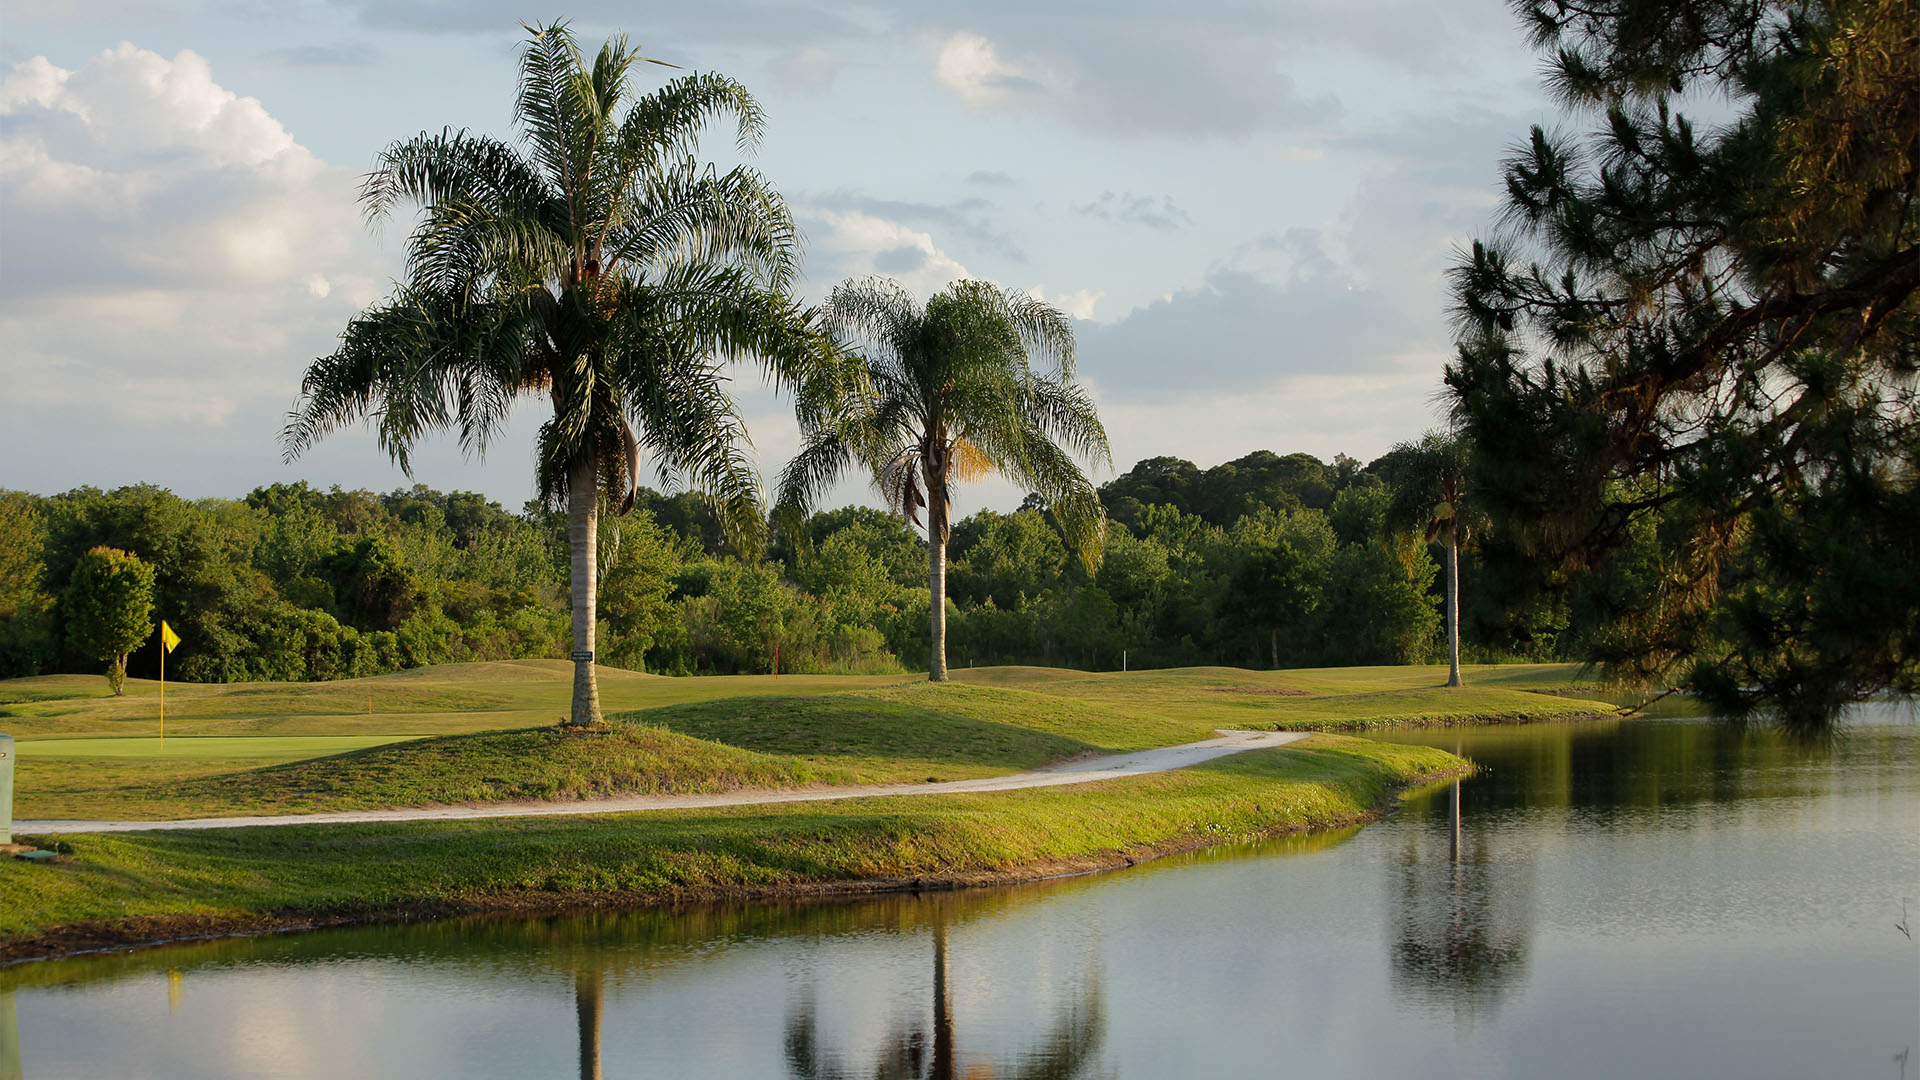 The clerbrook golf course winding through orlando terrain